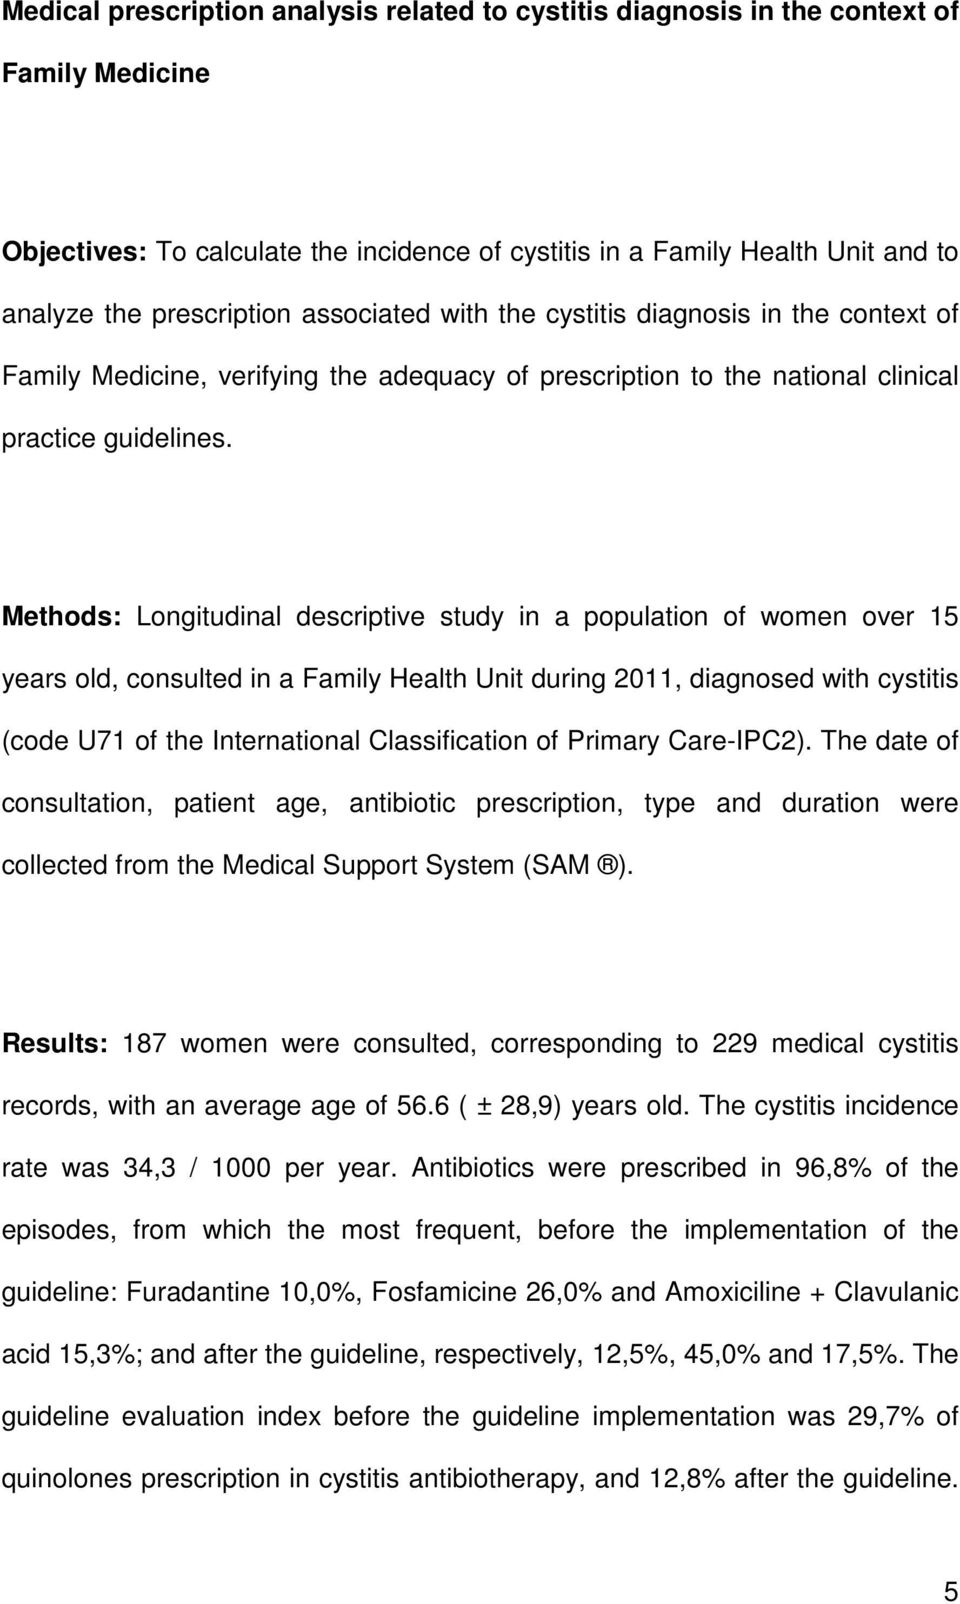 Methods: Longitudinal descriptive study in a population of women over 15 years old, consulted in a Family Health Unit during 2011, diagnosed with cystitis (code U71 of the International